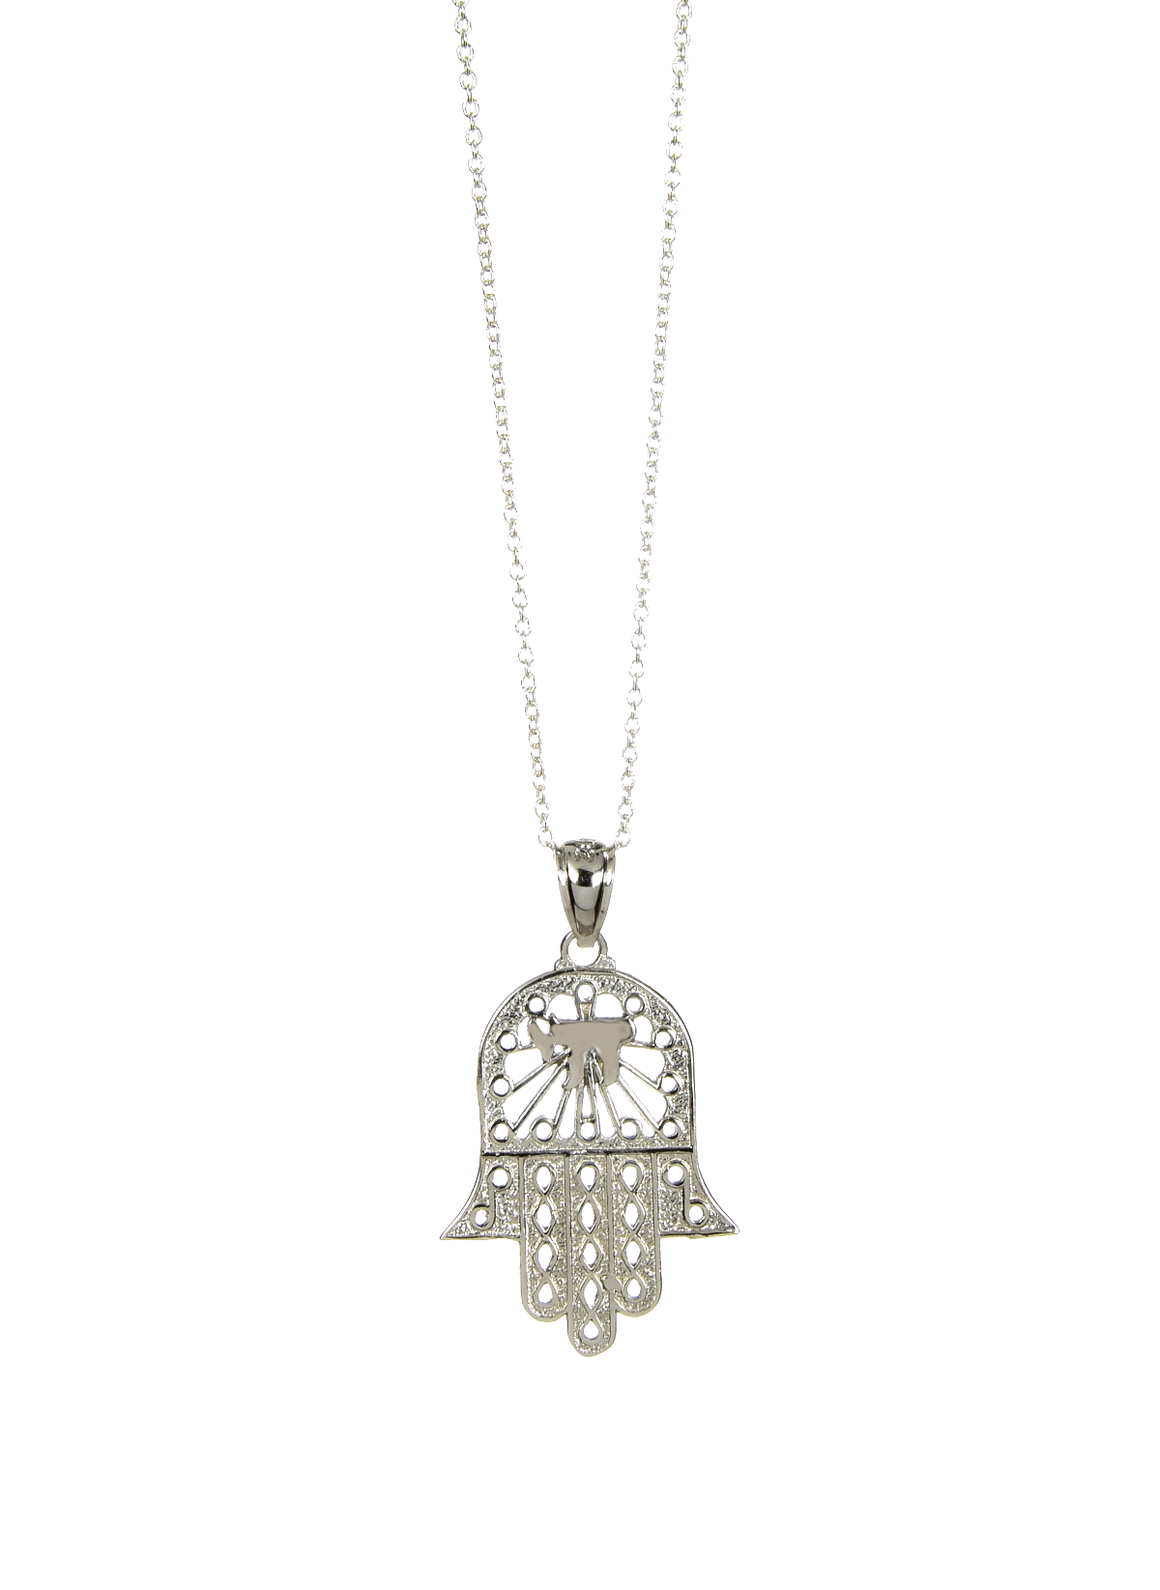 Filligree Hamsa Hand with Chai Pendant Necklace 925 Sterling Silver - Anny Gabriella NY